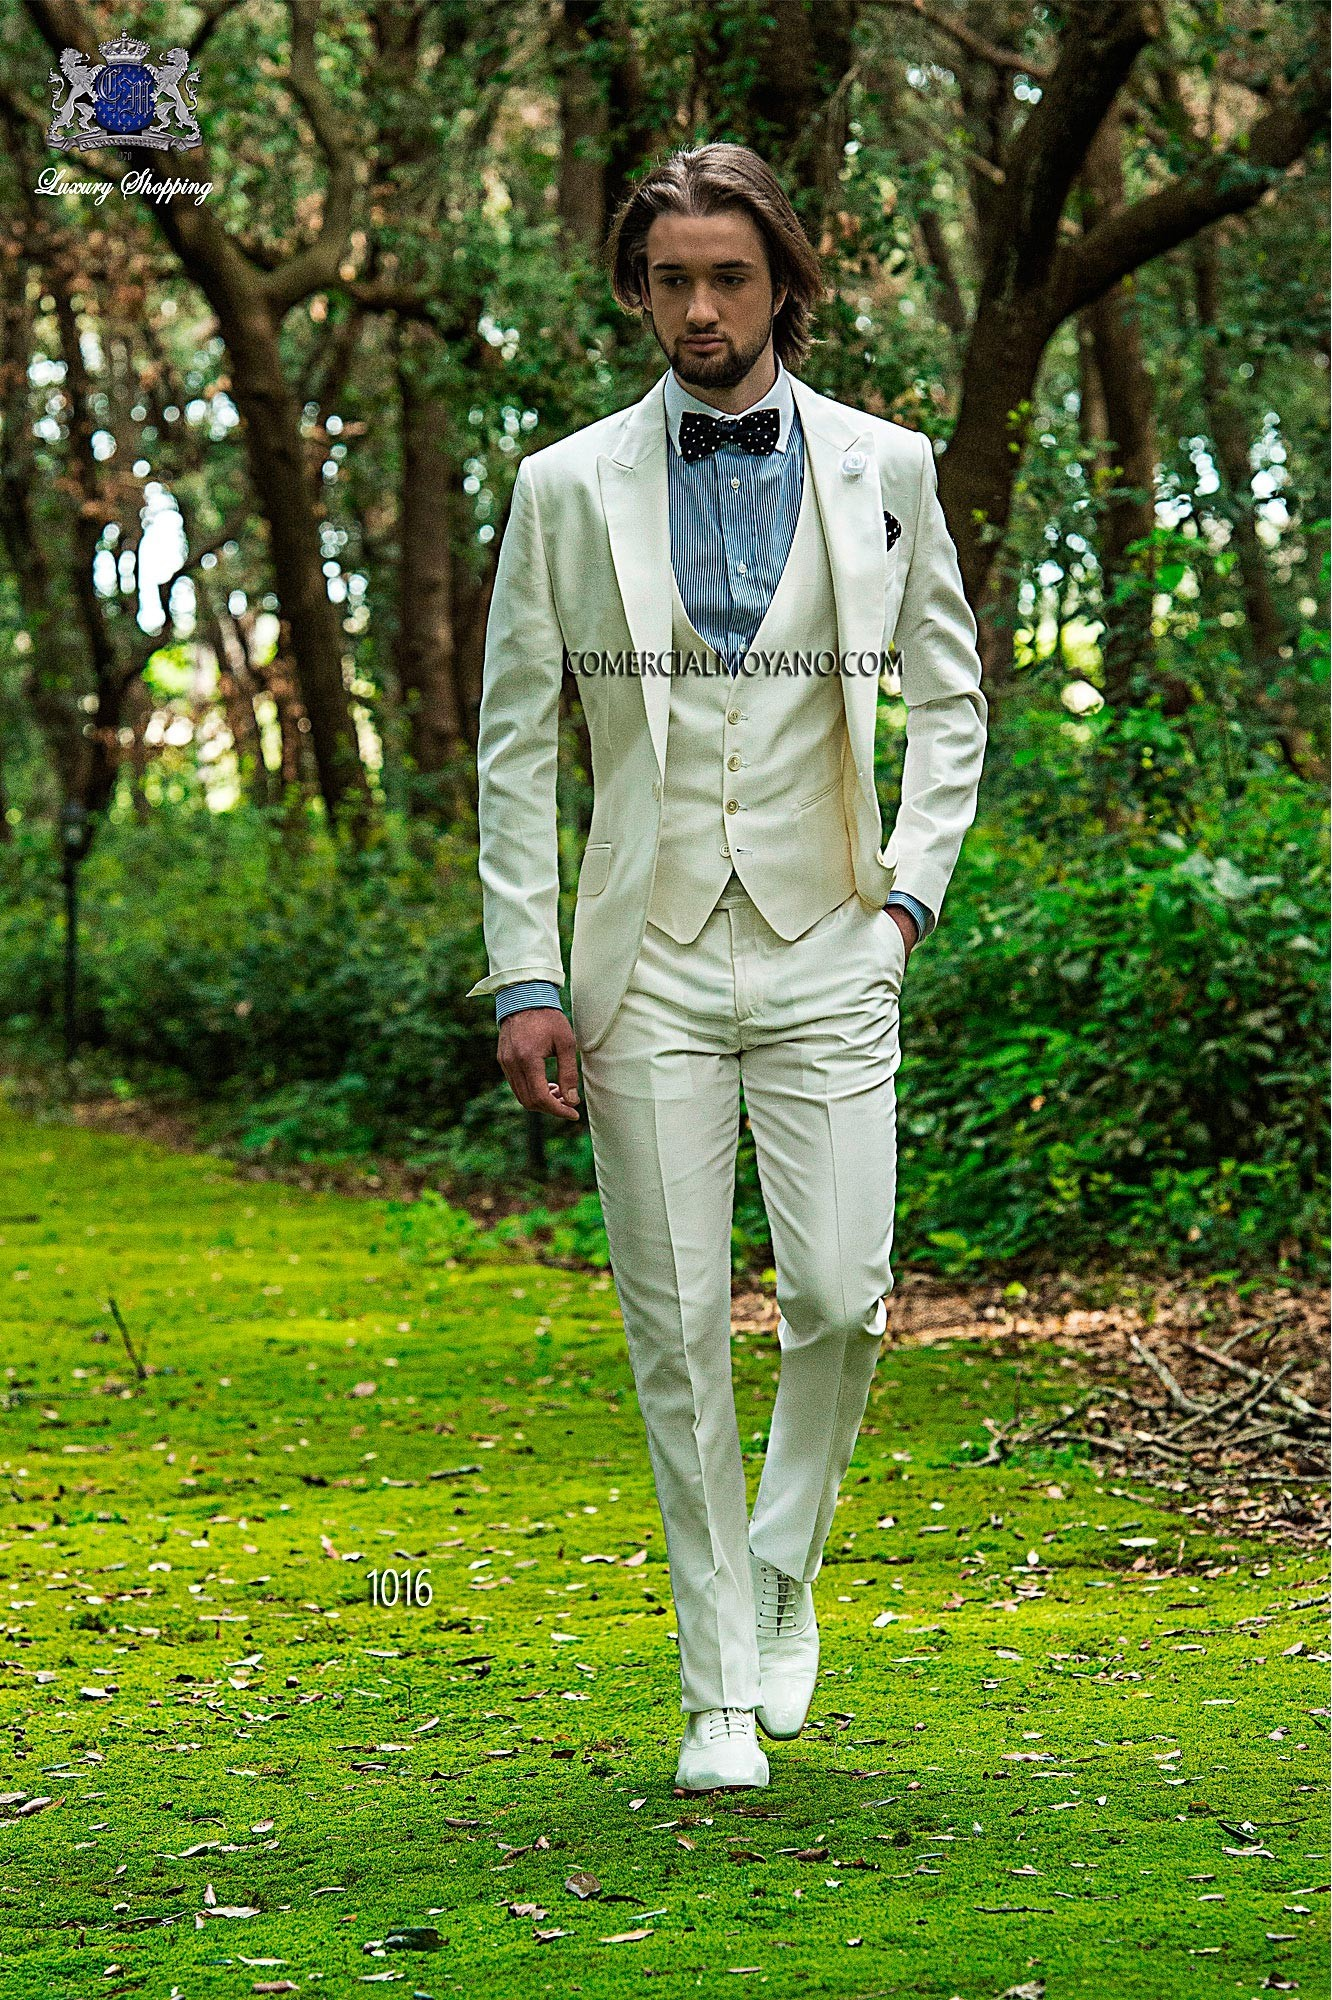 Three piece white silk-acetate shantung suit with peak lapel and single patterned button closure. Flap pockets and angled buttonholes; and single vent at back, style 1016 Ottavio Nuccio Gala, 2015 Fashion Collection.